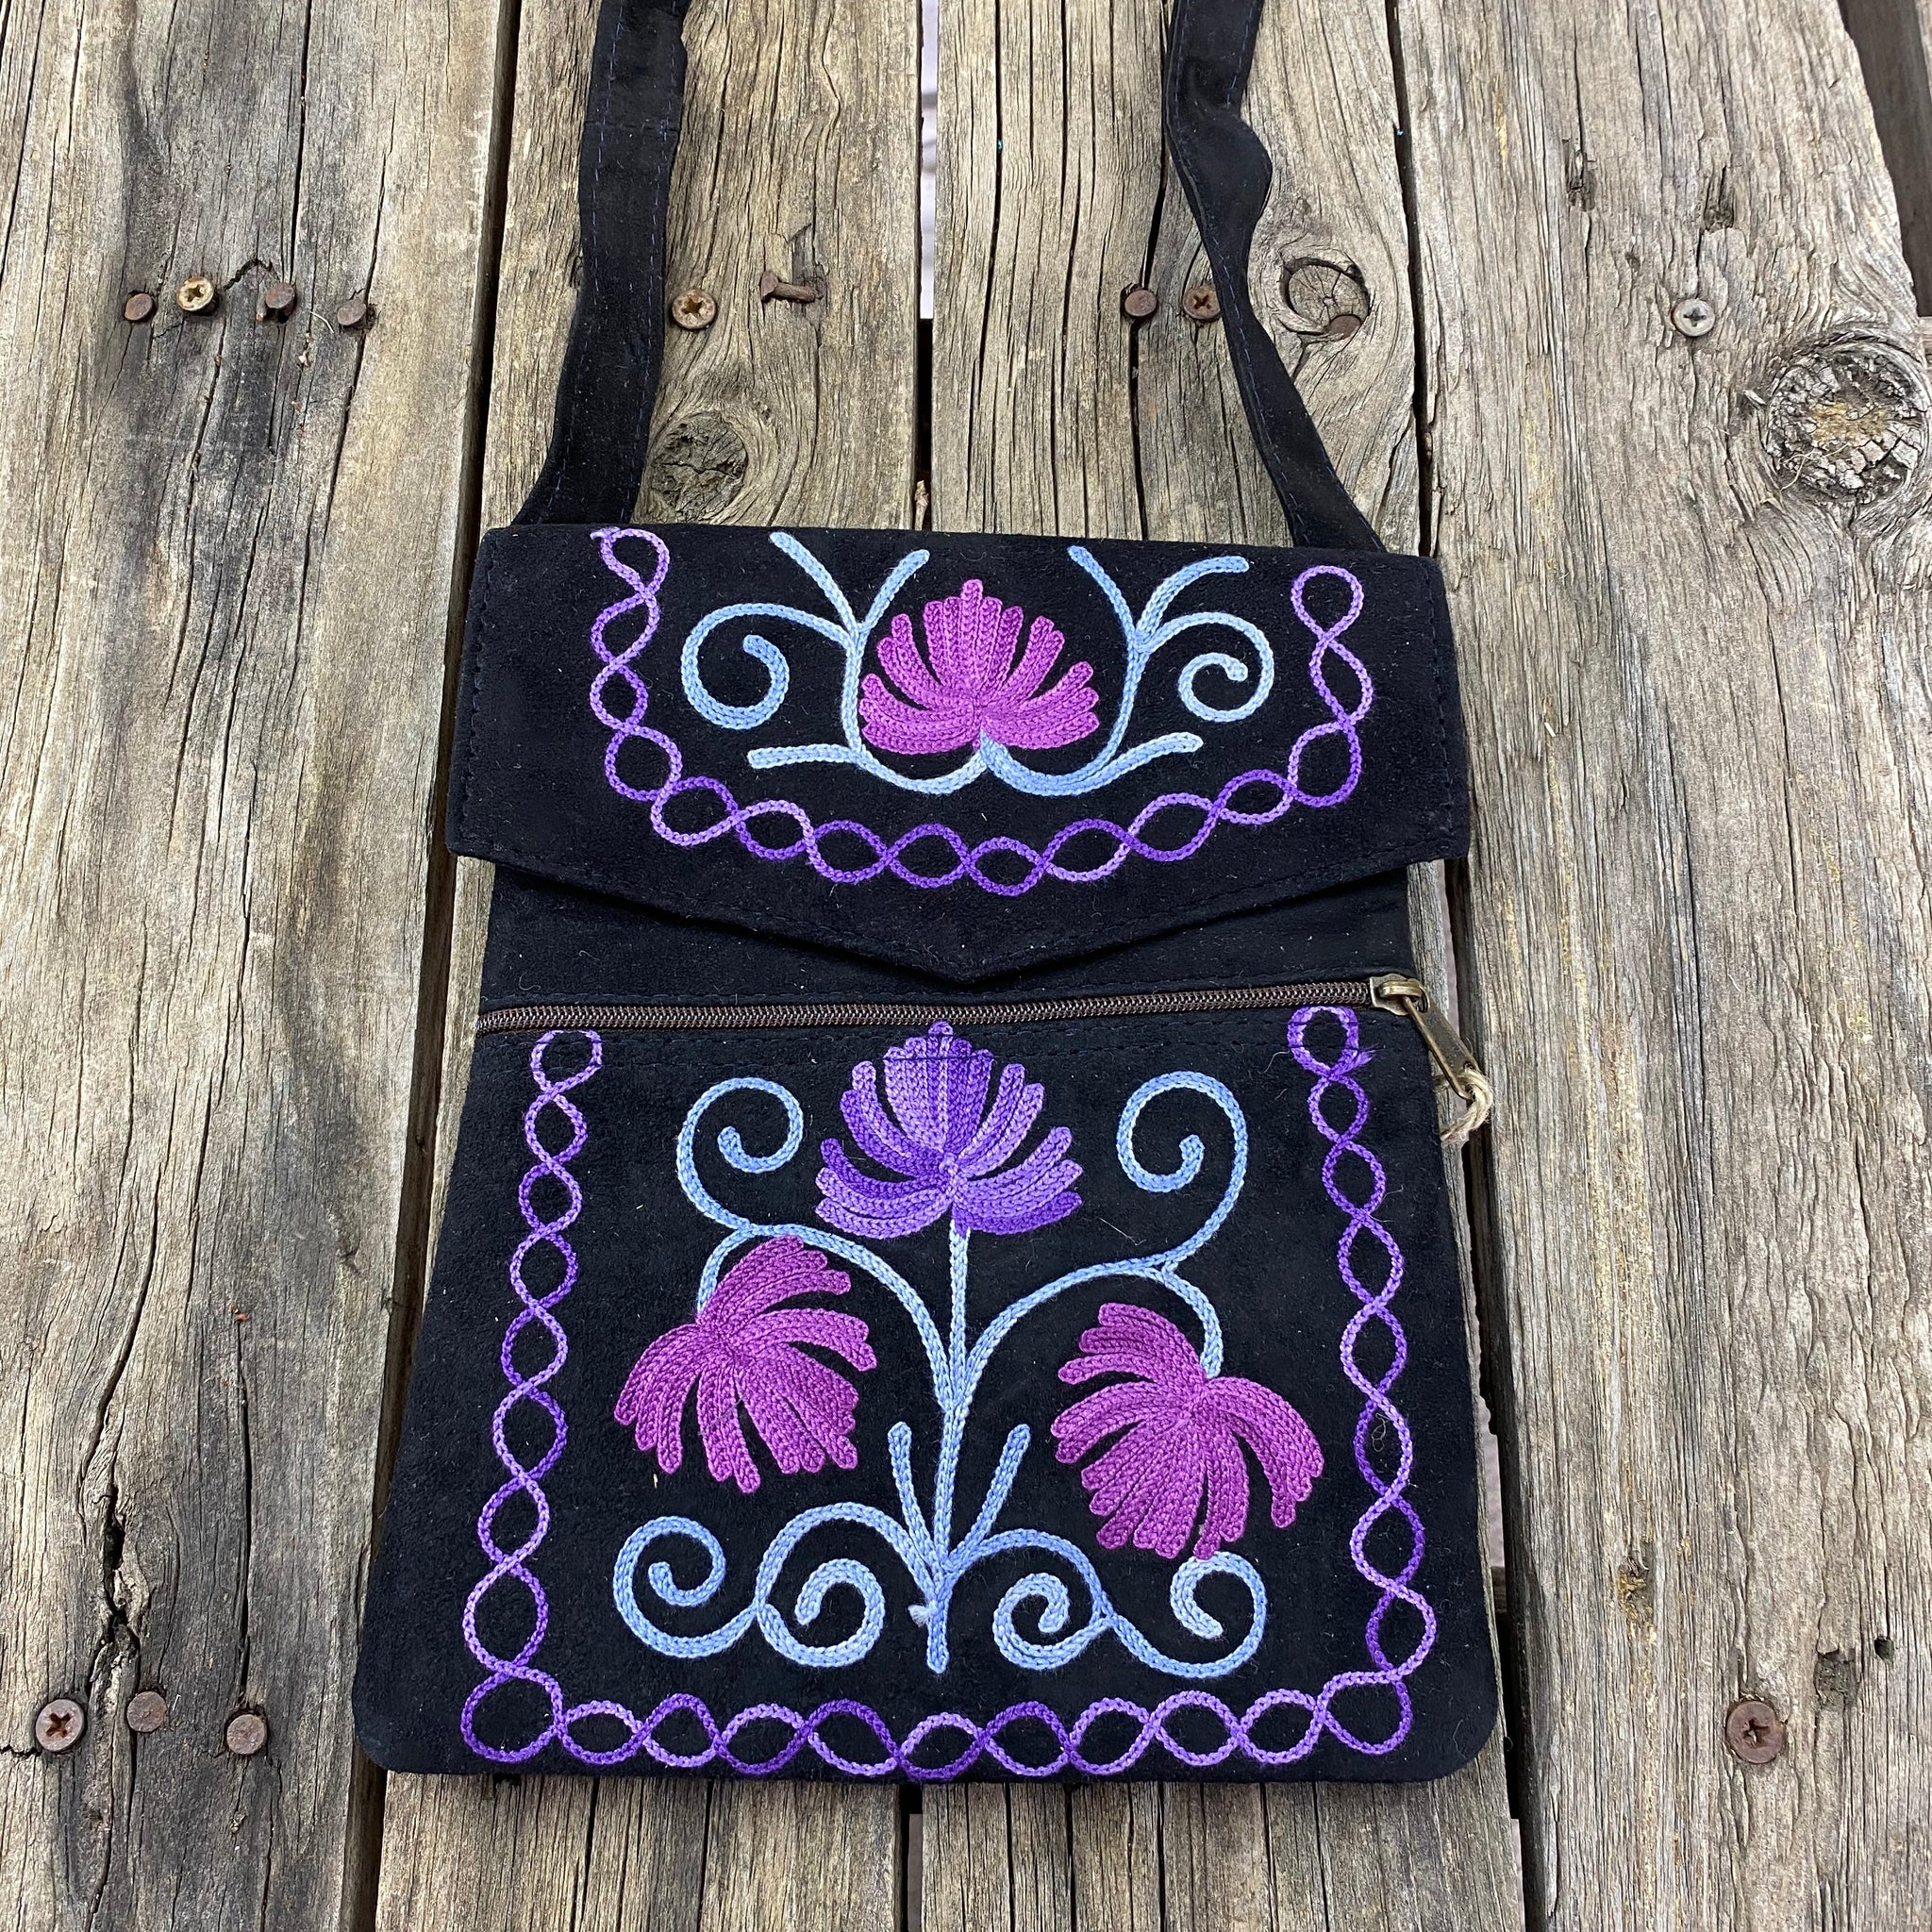 Fair Trade Ethical Embroidered Suede Flap Bag in Floral Designs Navy with Purple Flowers